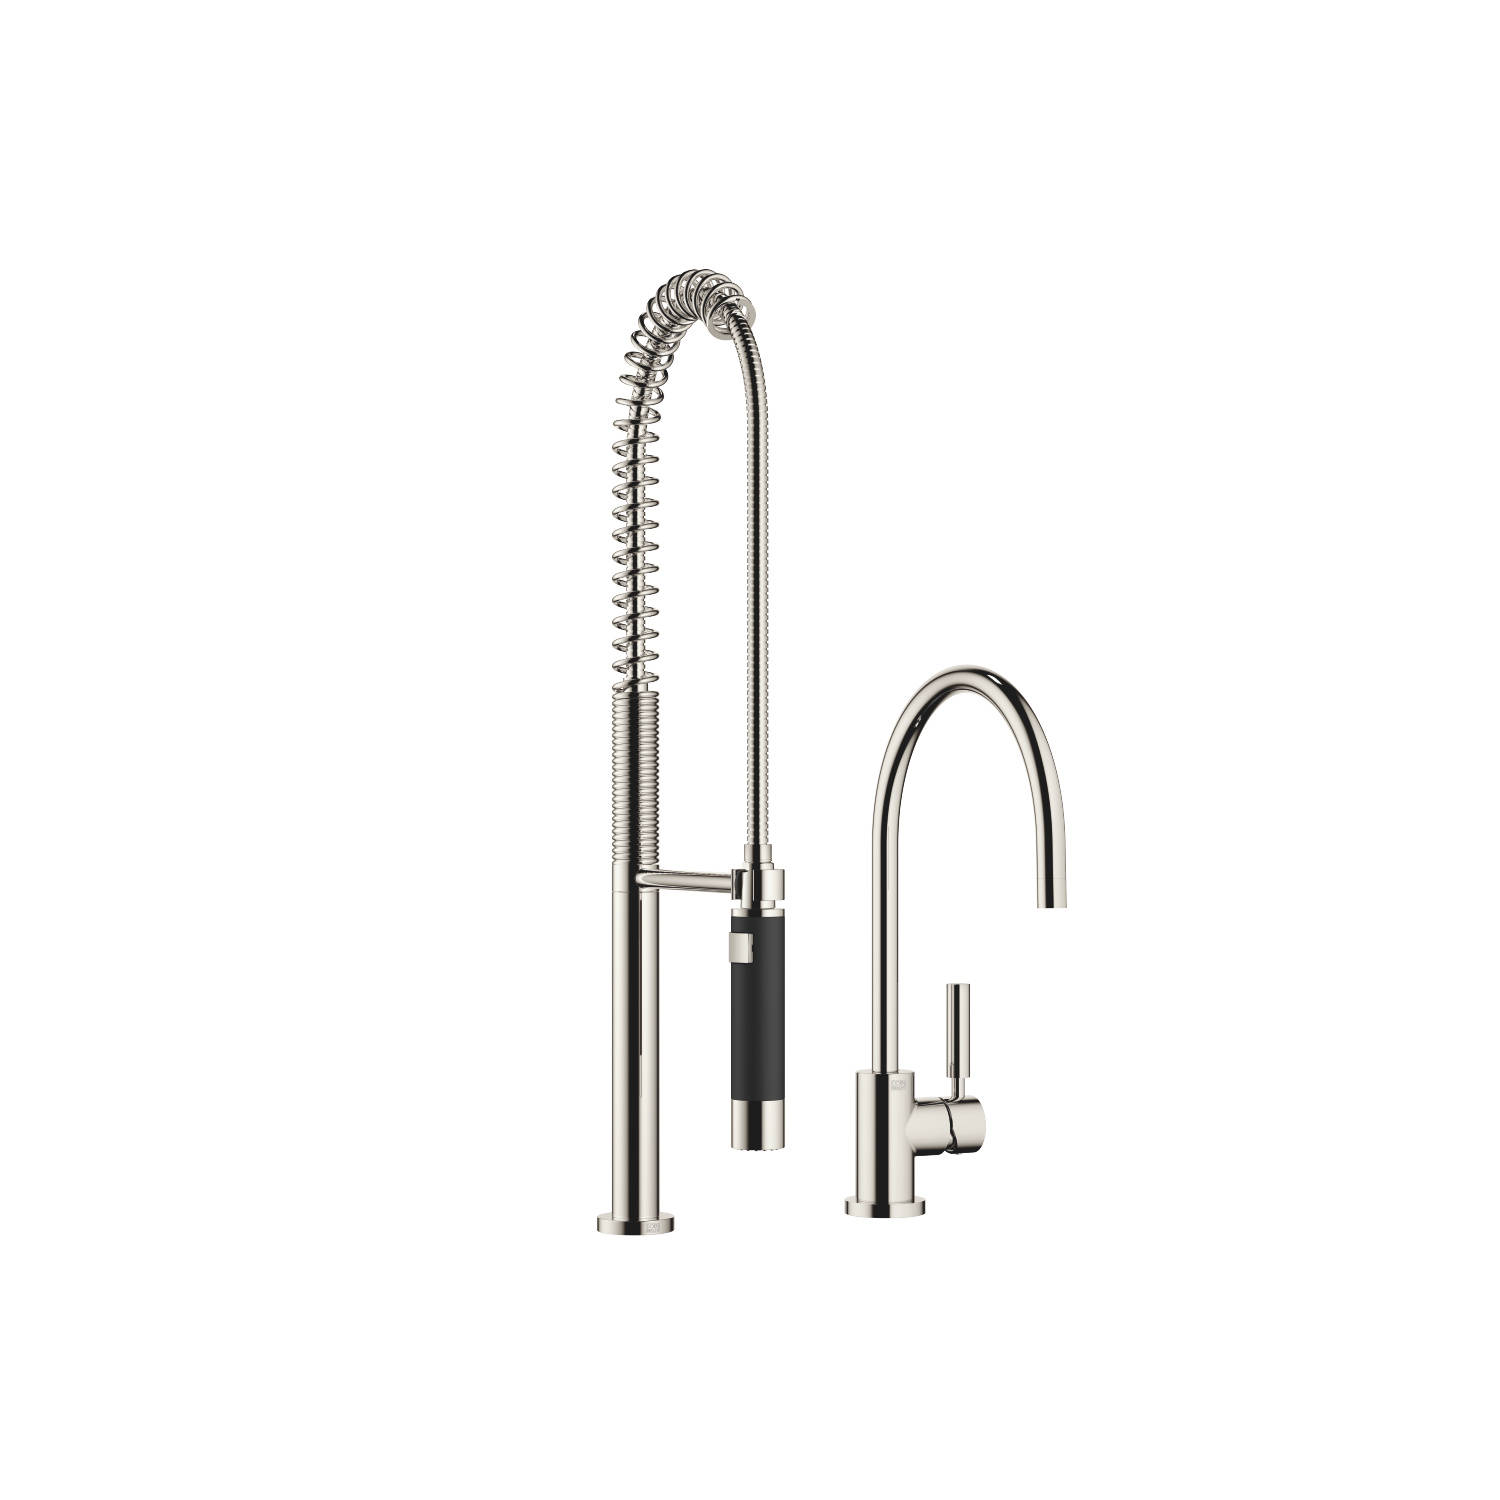 Single-lever mixer with Profi spray set - platinum